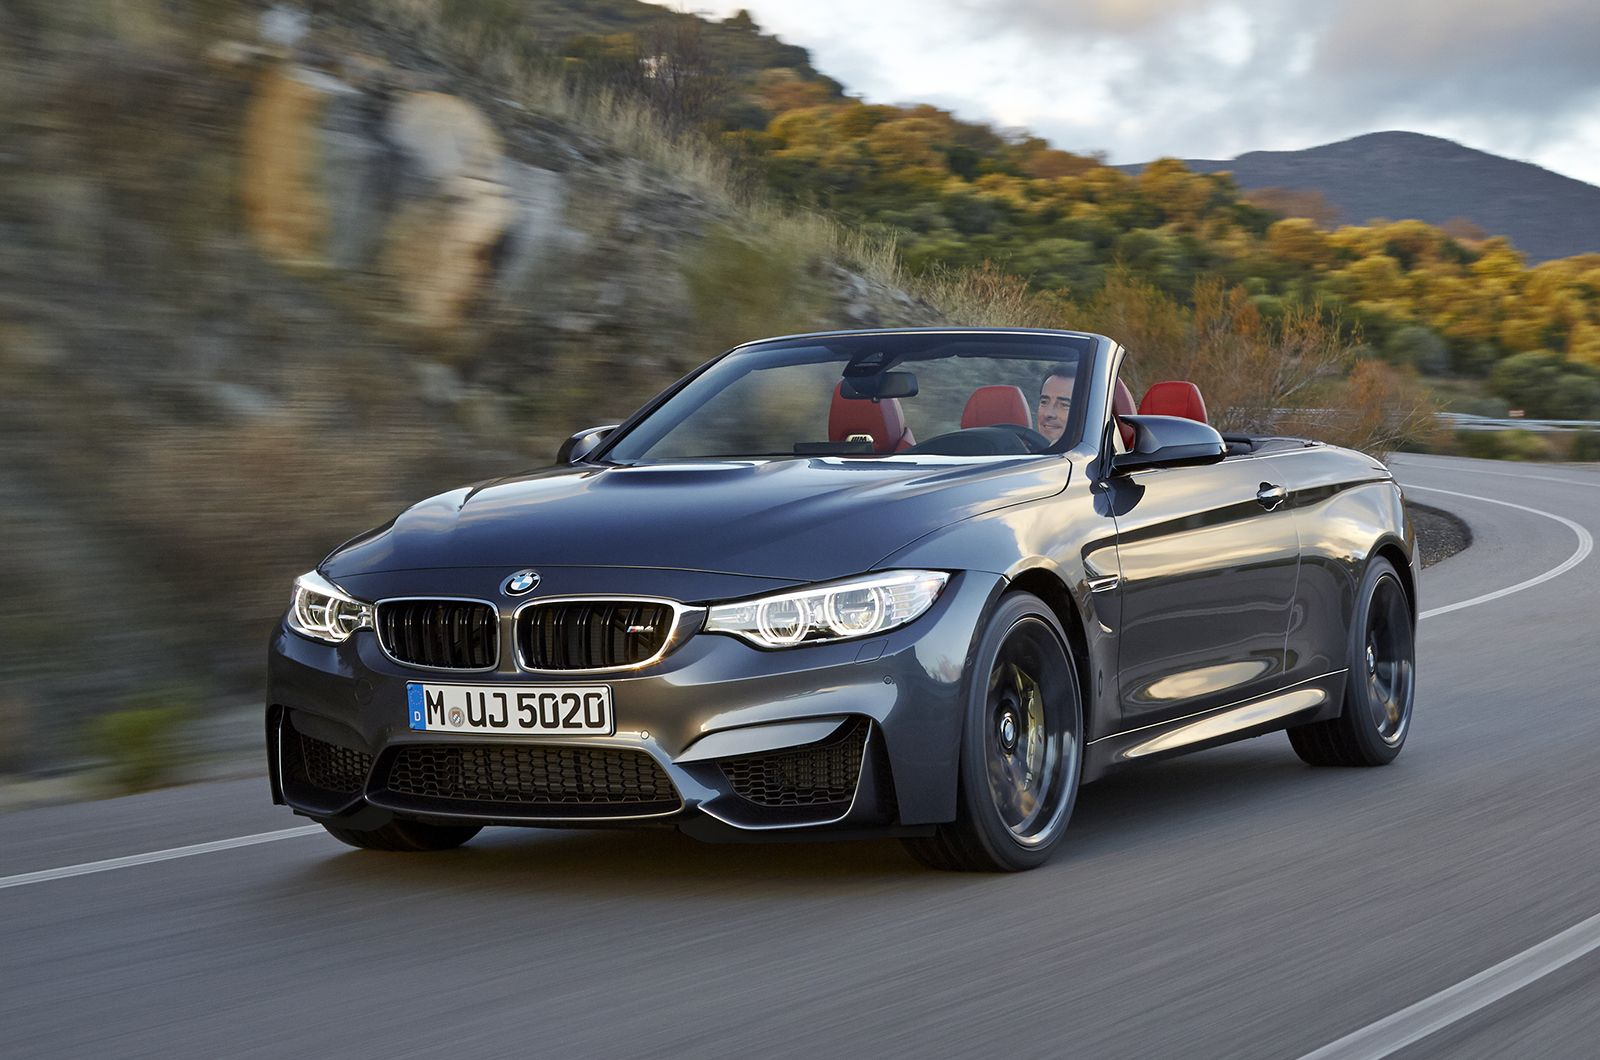 Bmw M4 Cabriolet Revealed With 425bhp Bmw Cars Bmw Cars Bmw M4